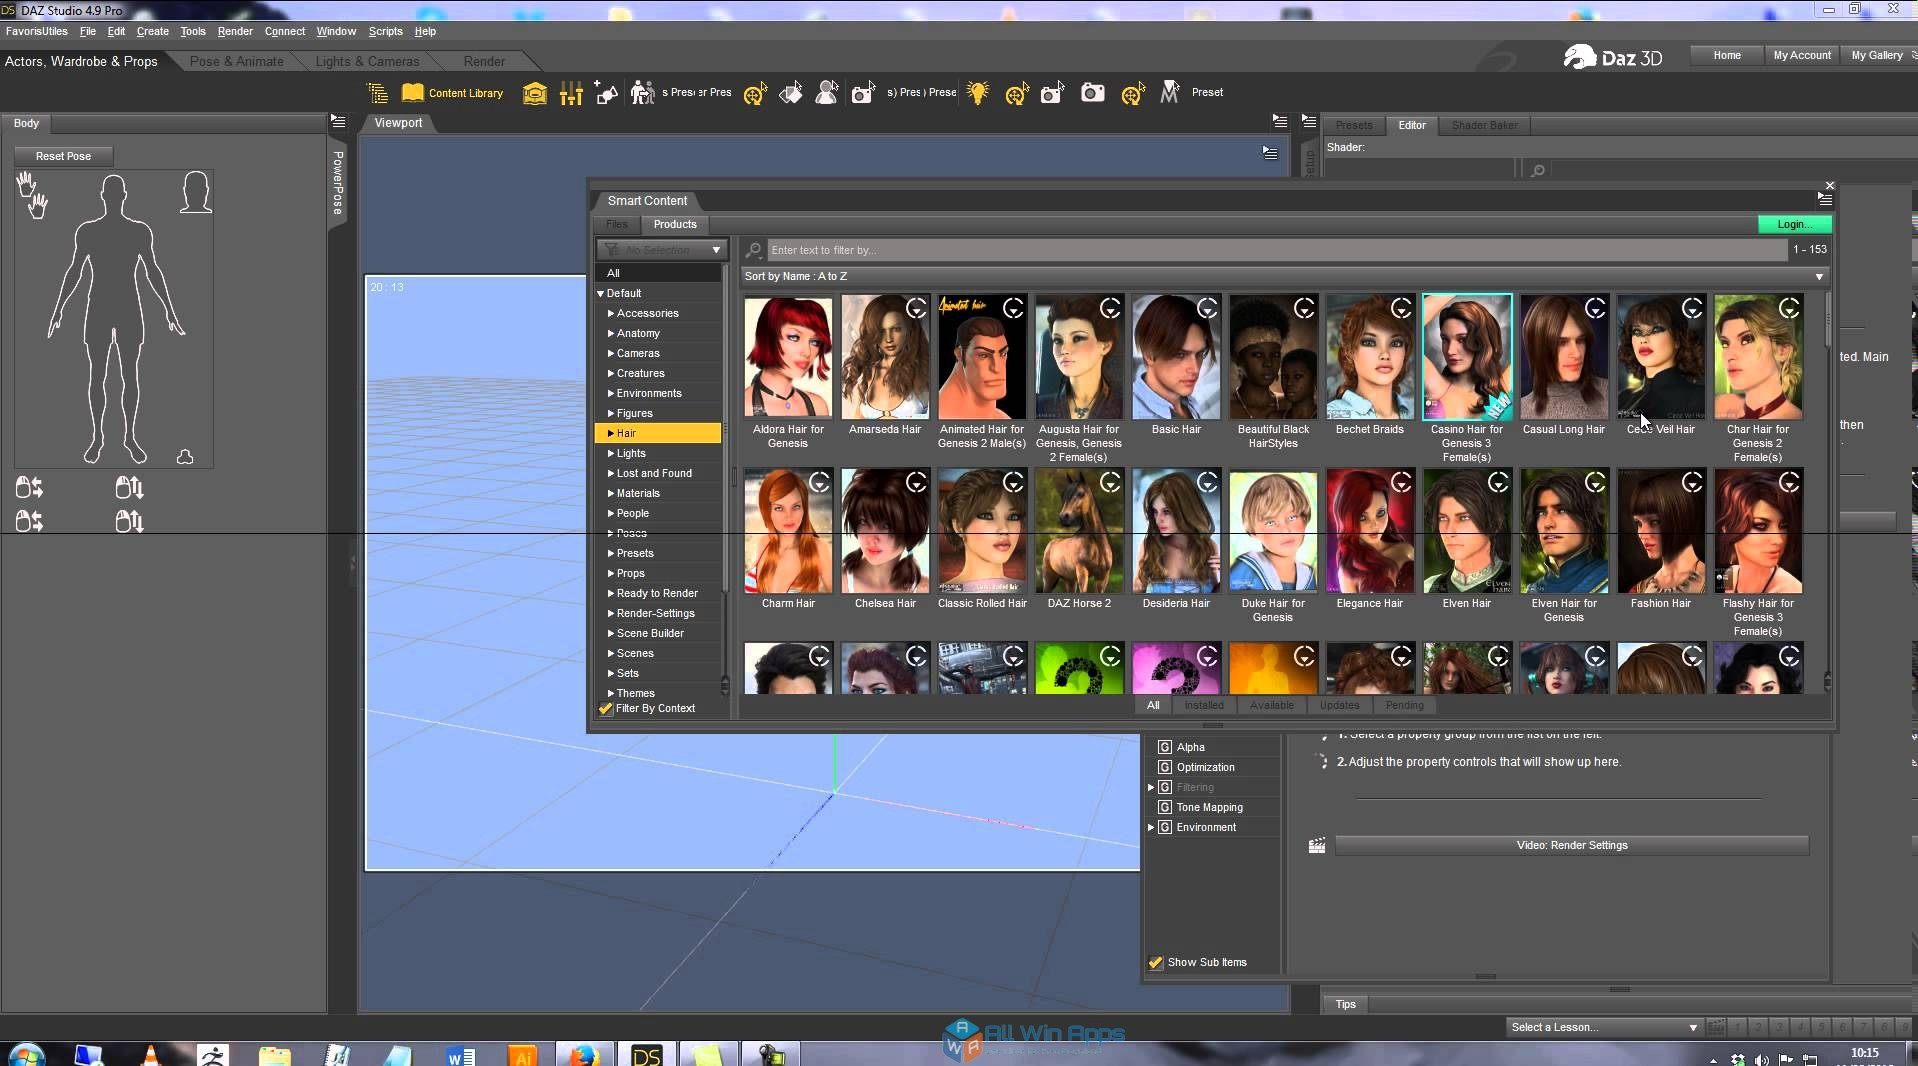 DAZ Studio Pro 4.9 Review and best features